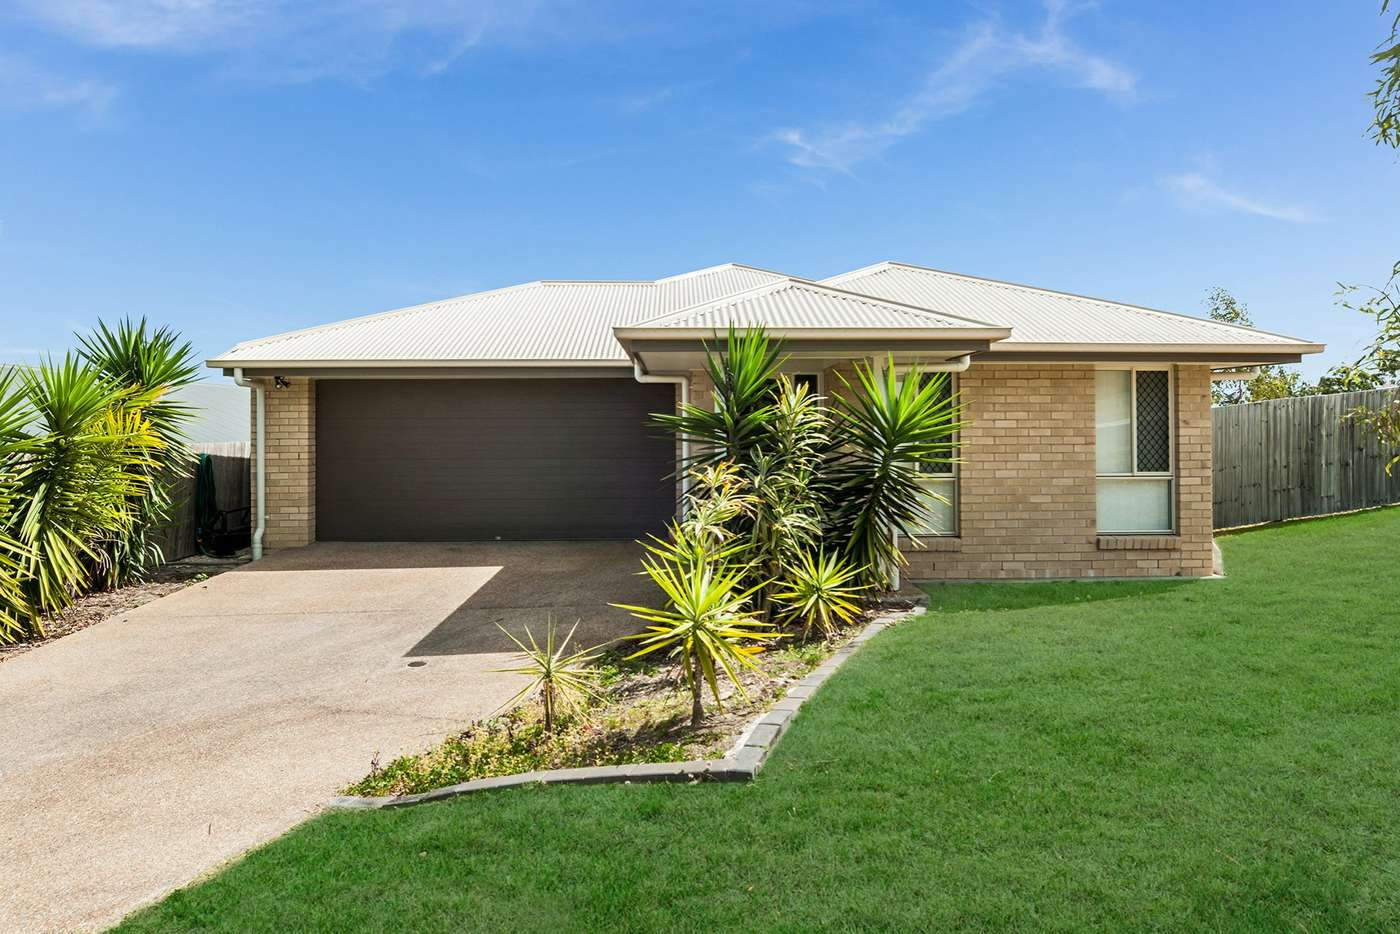 Main view of Homely house listing, 44 Nova St, Waterford QLD 4133